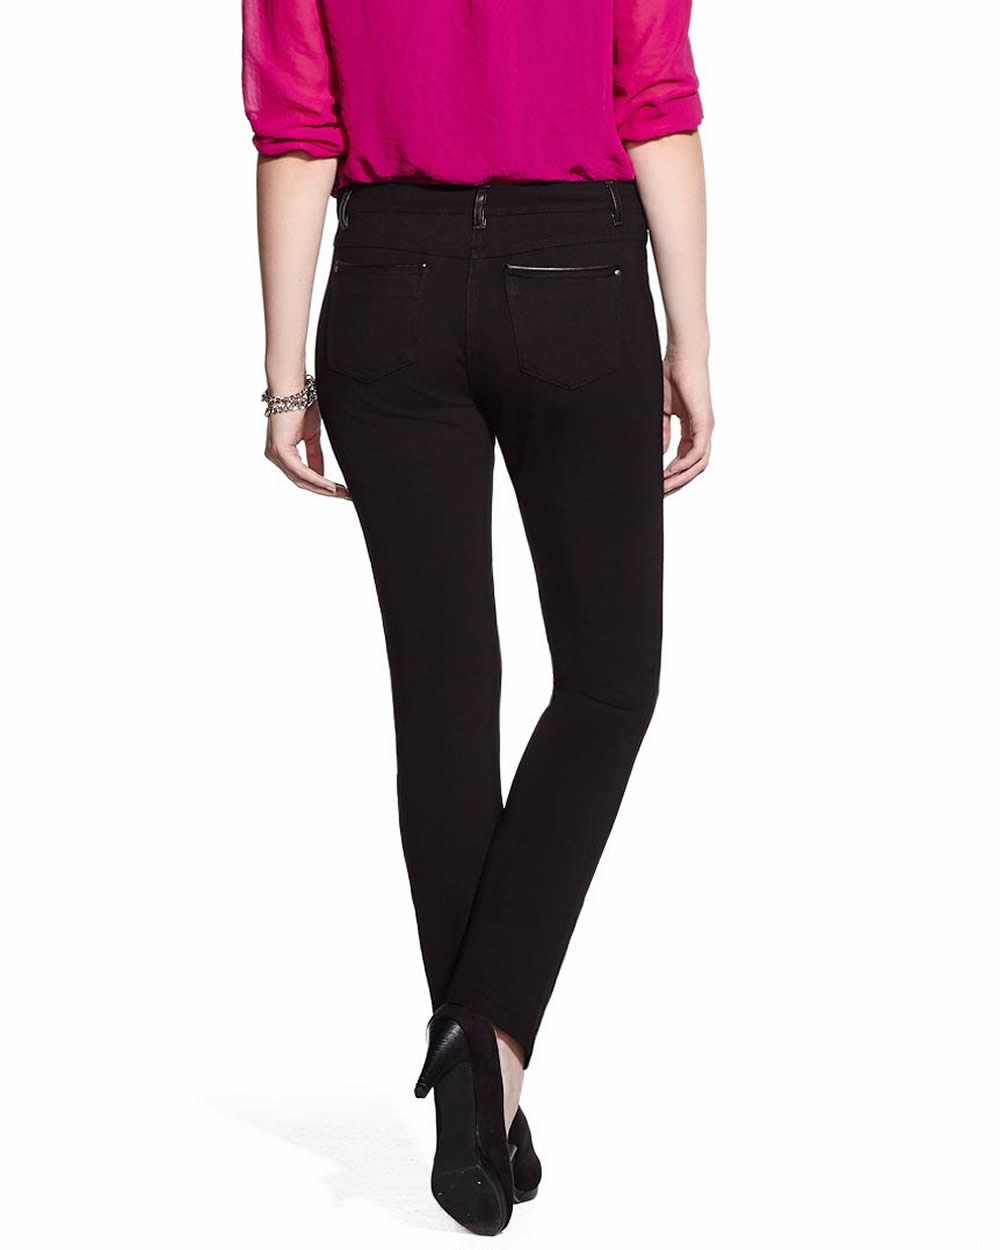 Buy the PETITE Cotton Blend Slim Leg Trousers from Marks and Spencer's r0nd.tk: £